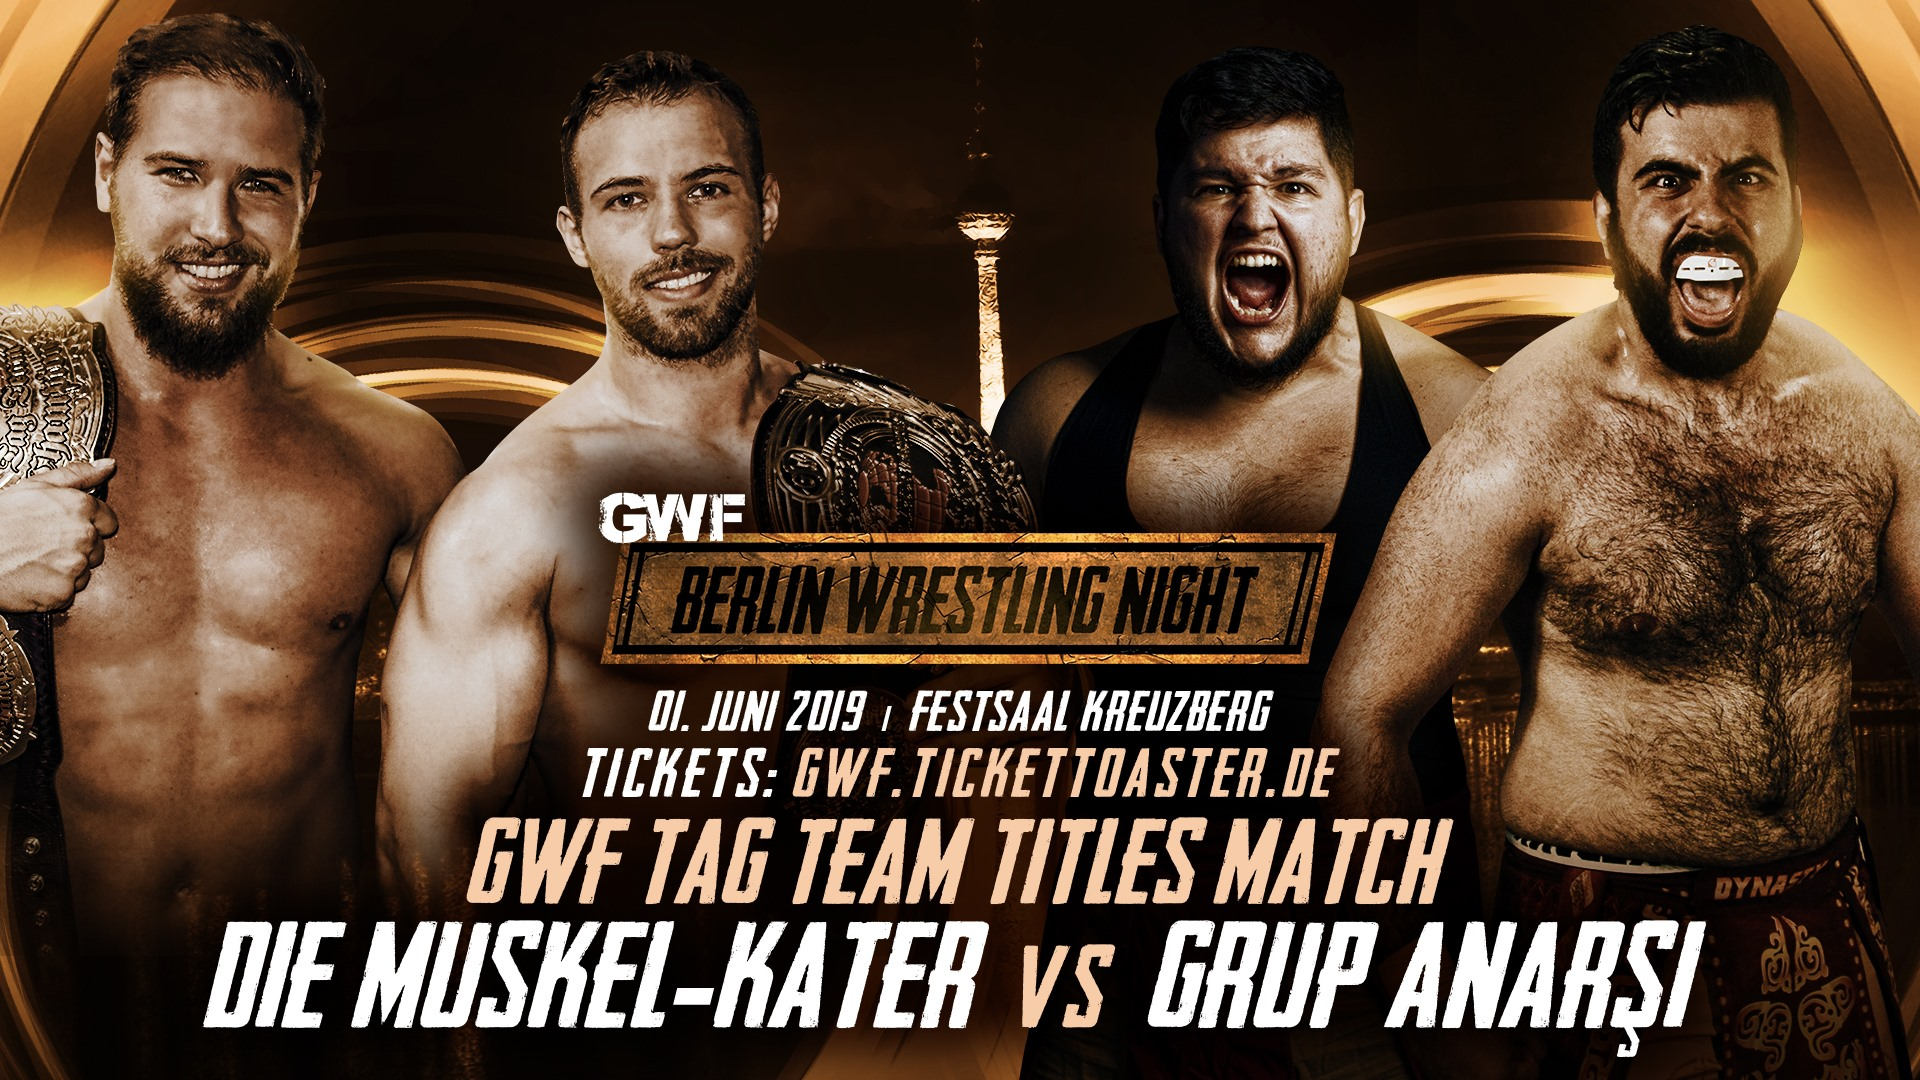 Die Muskel-Kater - Grup Anarsi - GWF Berlin Wrestling Night